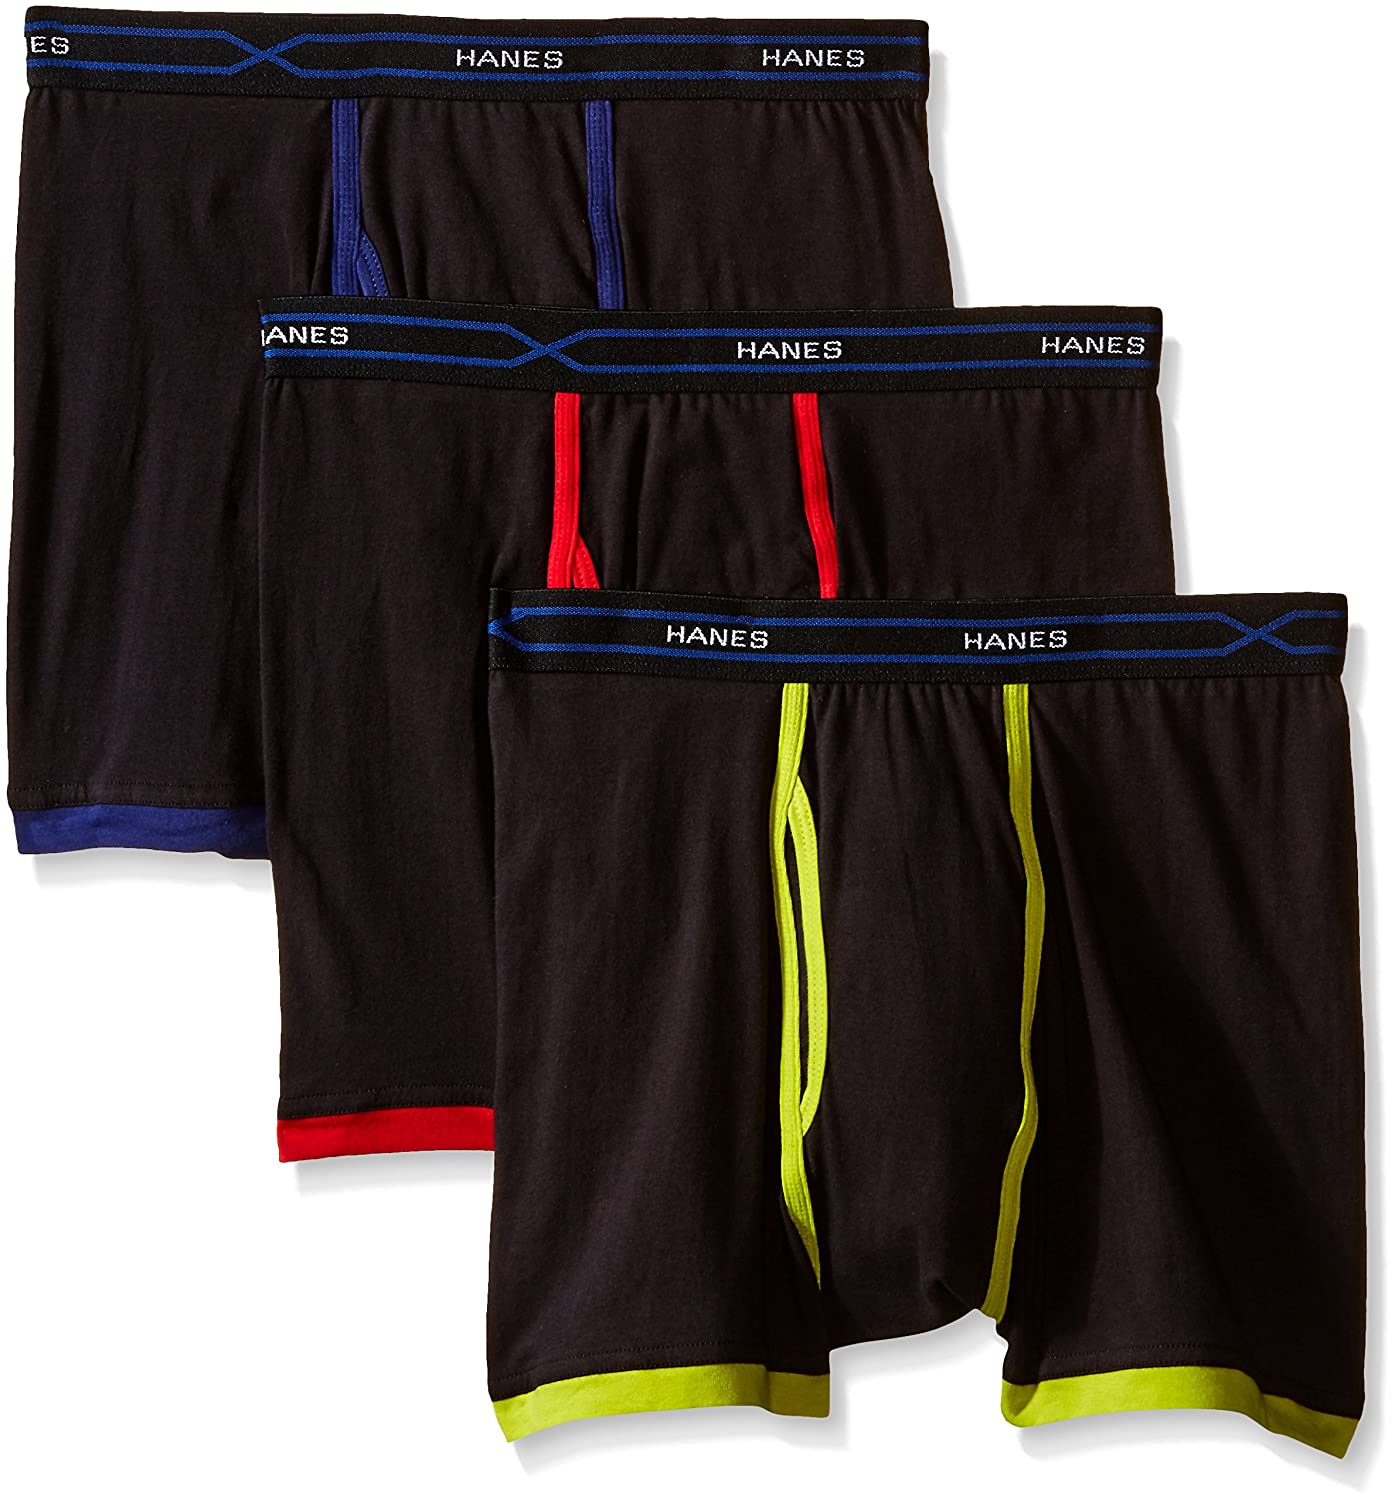 Hanes Men's Men's 3-Pack X-Temp Short Leg Active Cool Boxer Brief MTBSA3